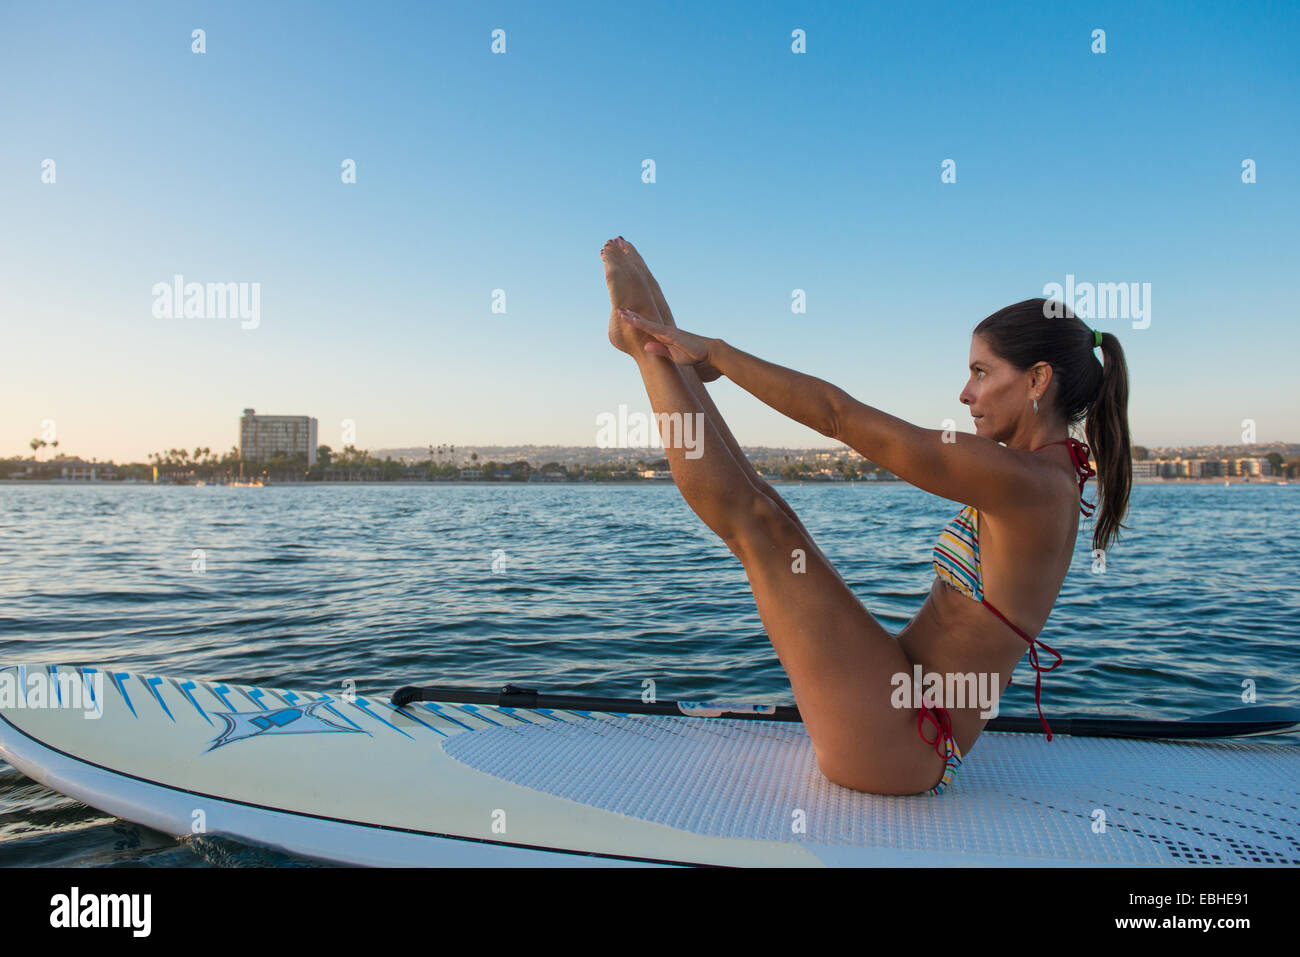 Mature woman in yoga position on paddleboard, Mission Bay, San Diego, California, USA - Stock Image